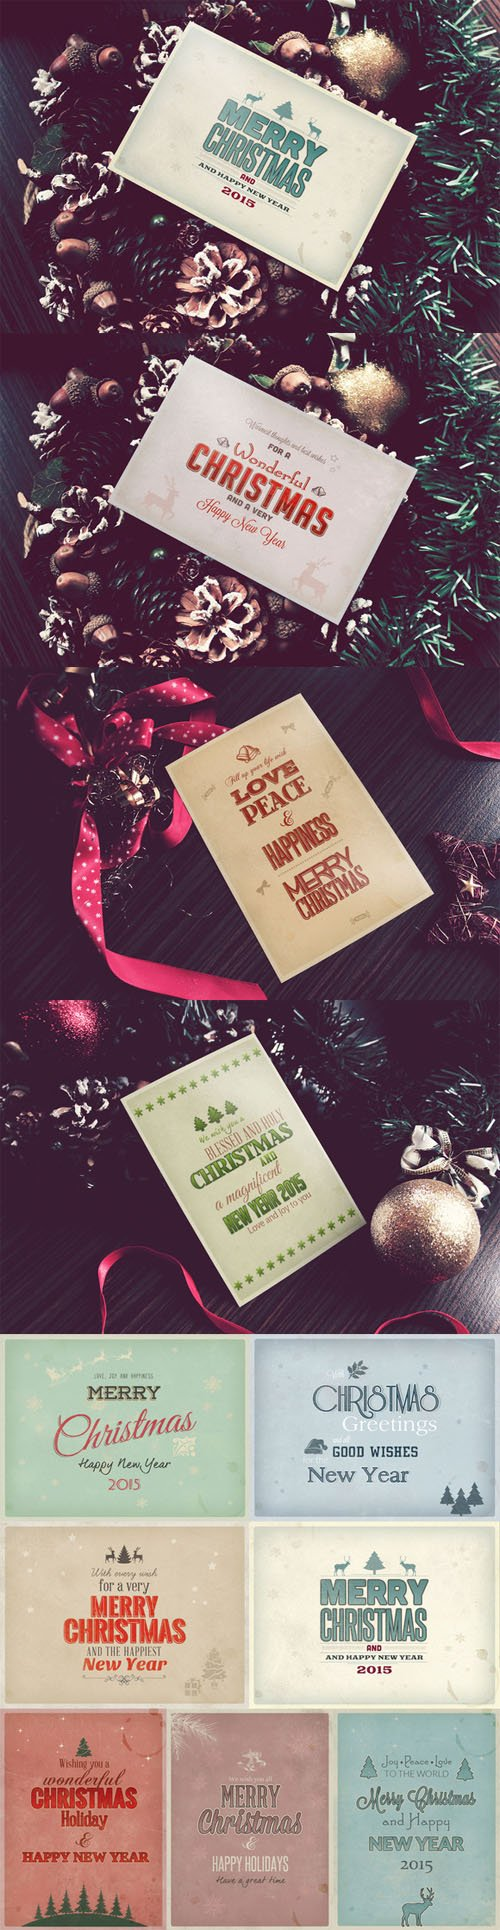 10 Retro Christmas Cards PSD - Creativemarket 125199